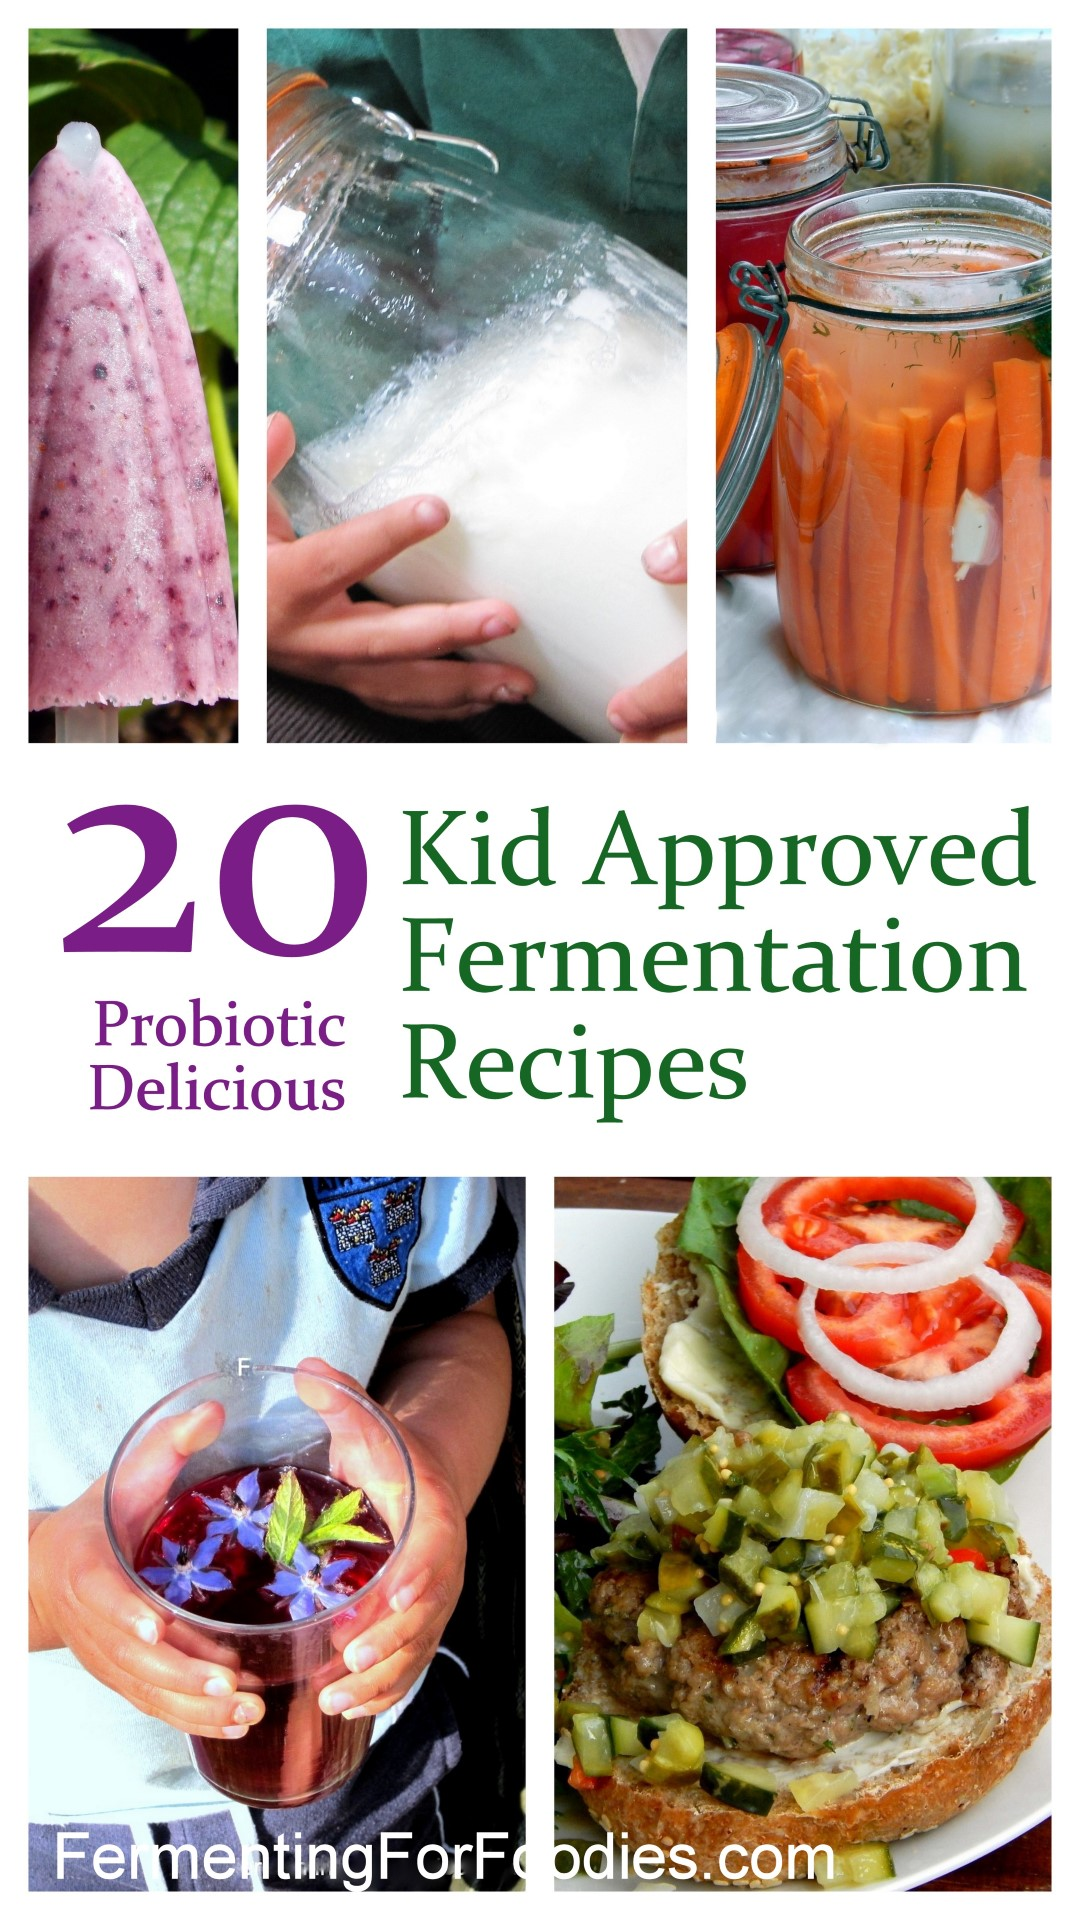 How to get a picky eater to eat fermented foods. Kid-friendly Fermented Recipes